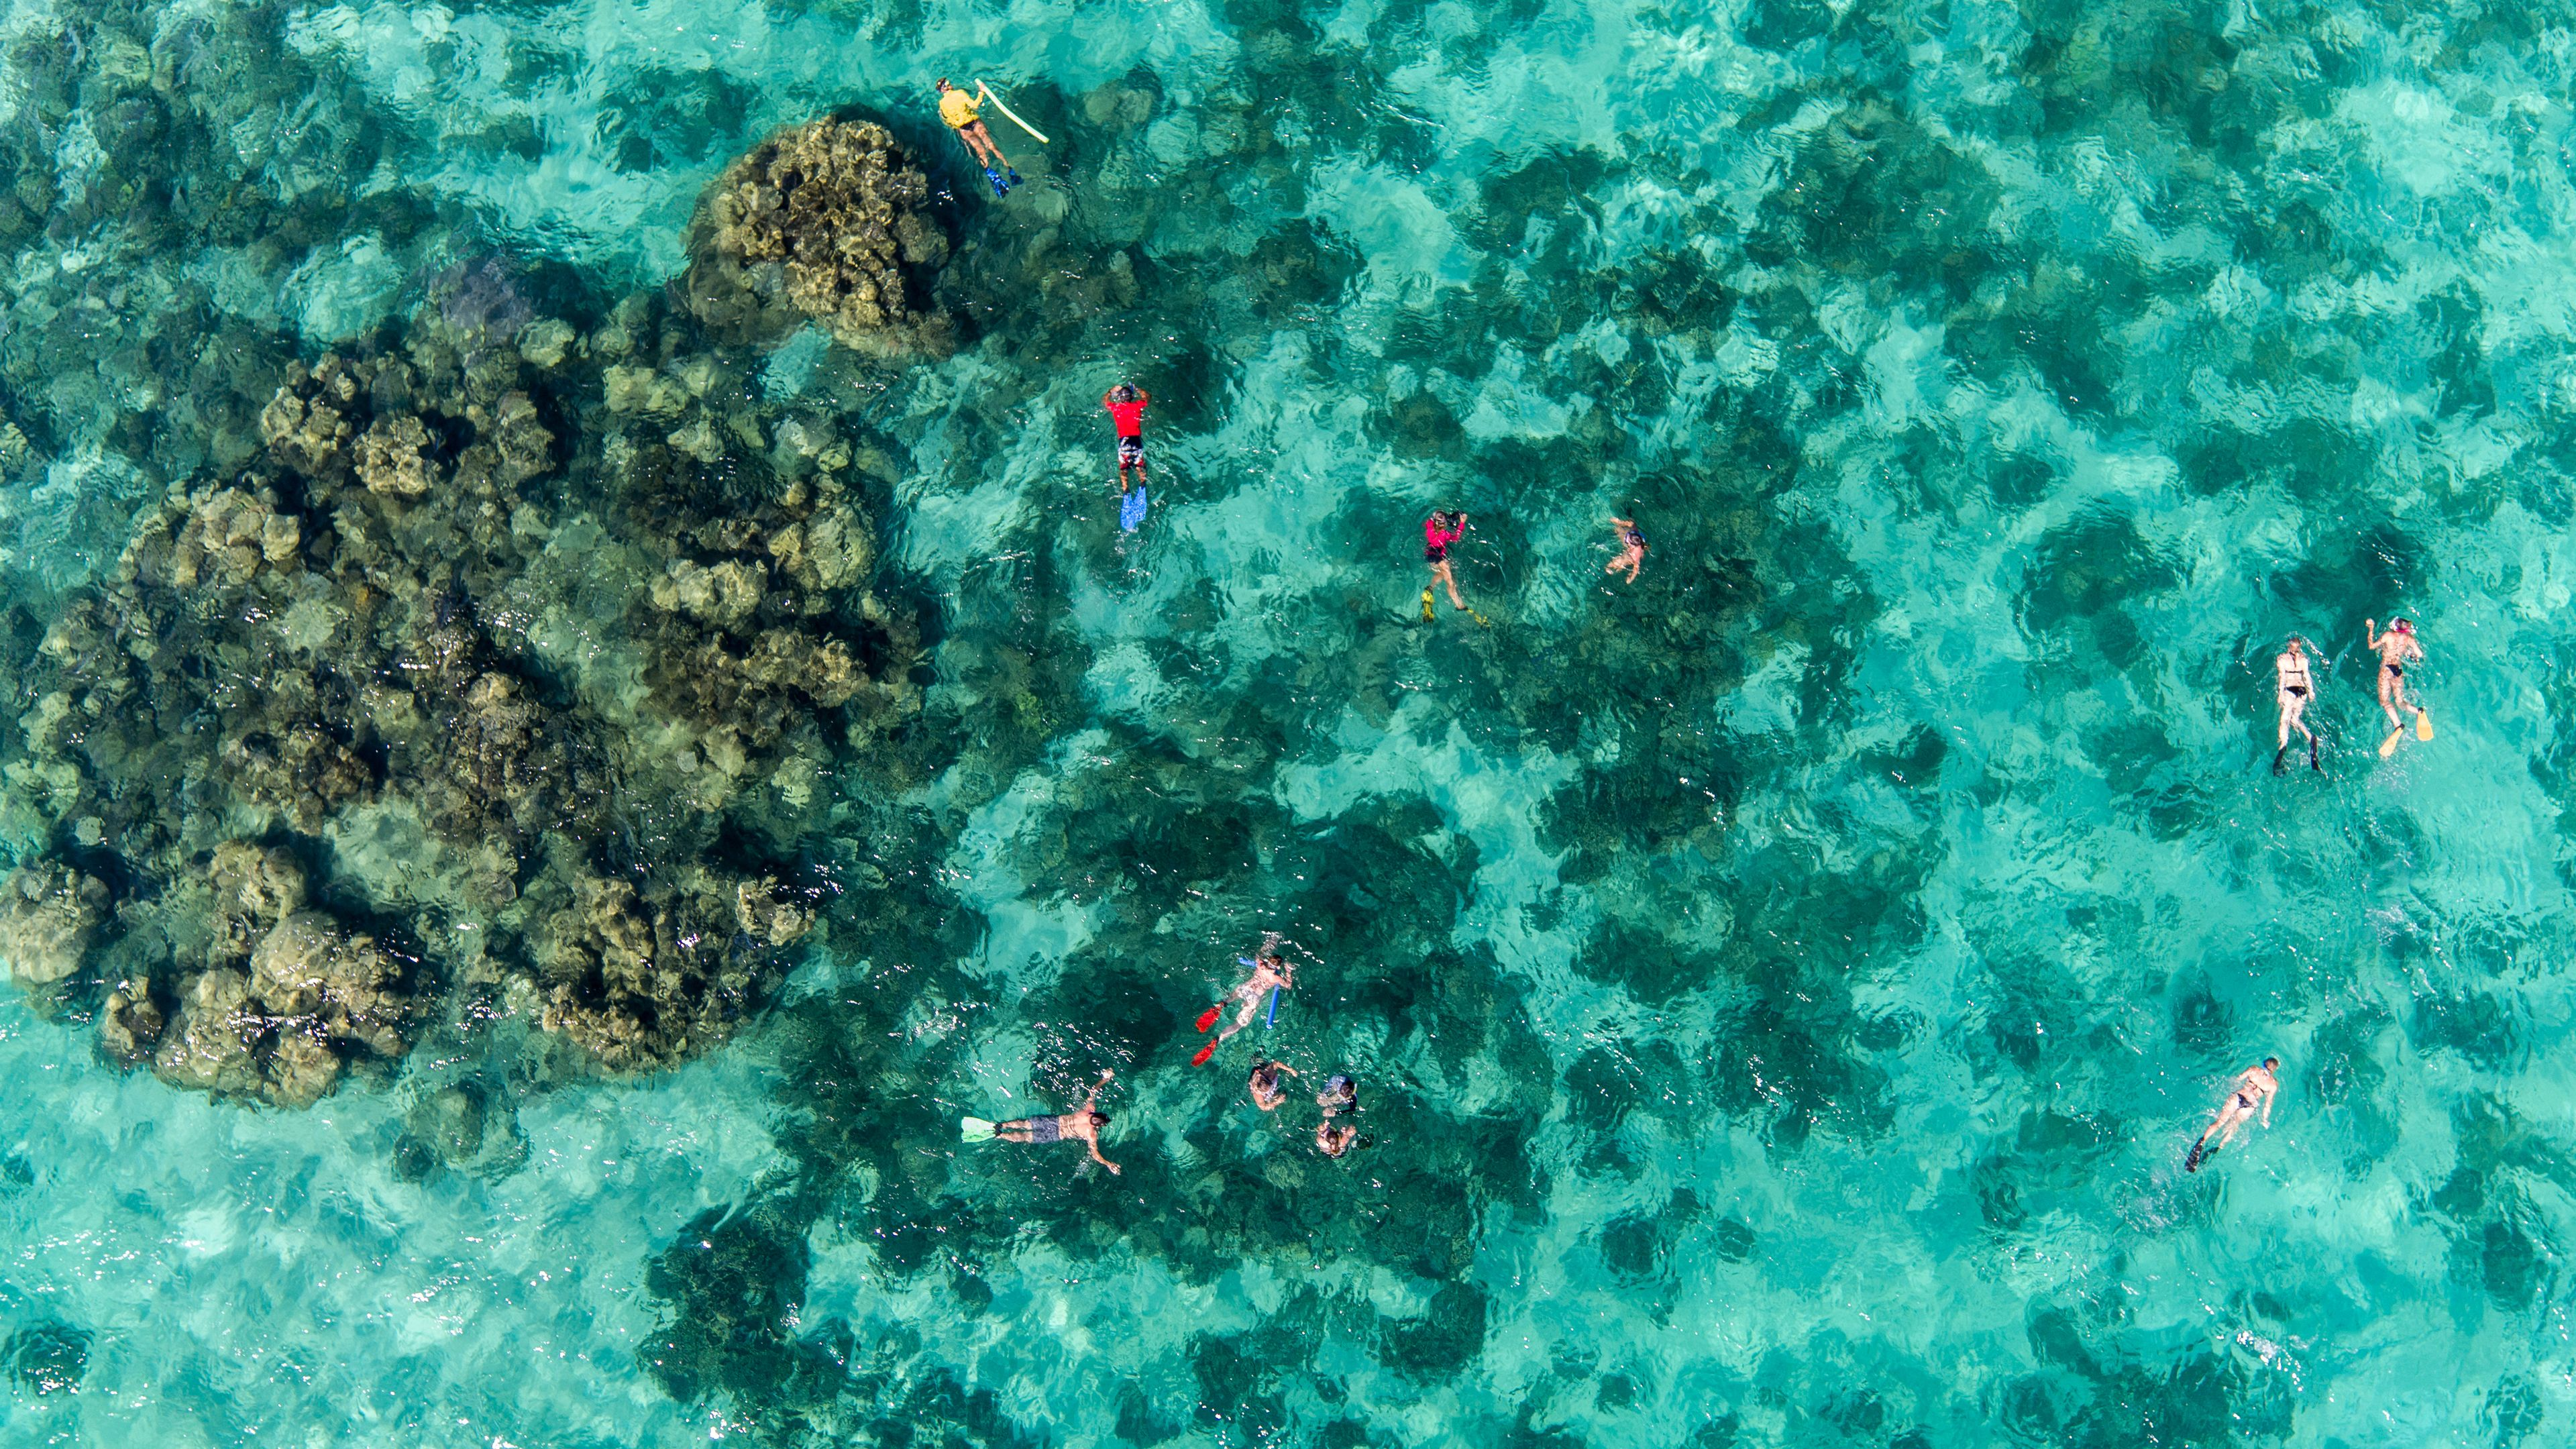 Aerial view of snorkelers in reef